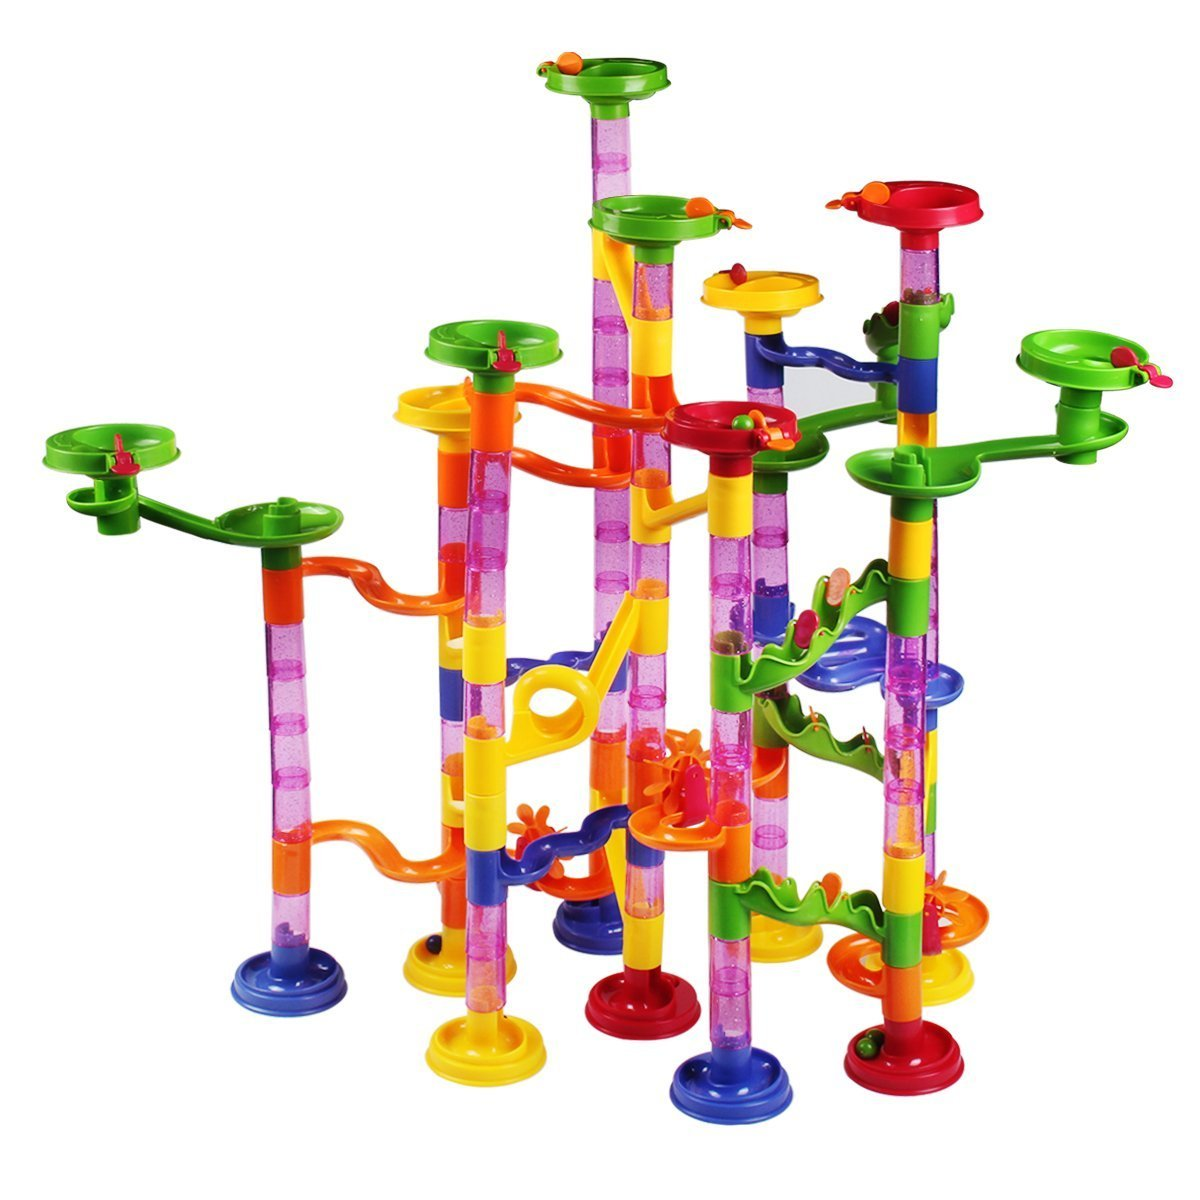 Welcomy Marble Runs Toy Set, 105 Pieces 30 Glass Pipeline Game STEM Learning Toy, Educational Construction Building Blocks Toy Set for Kids